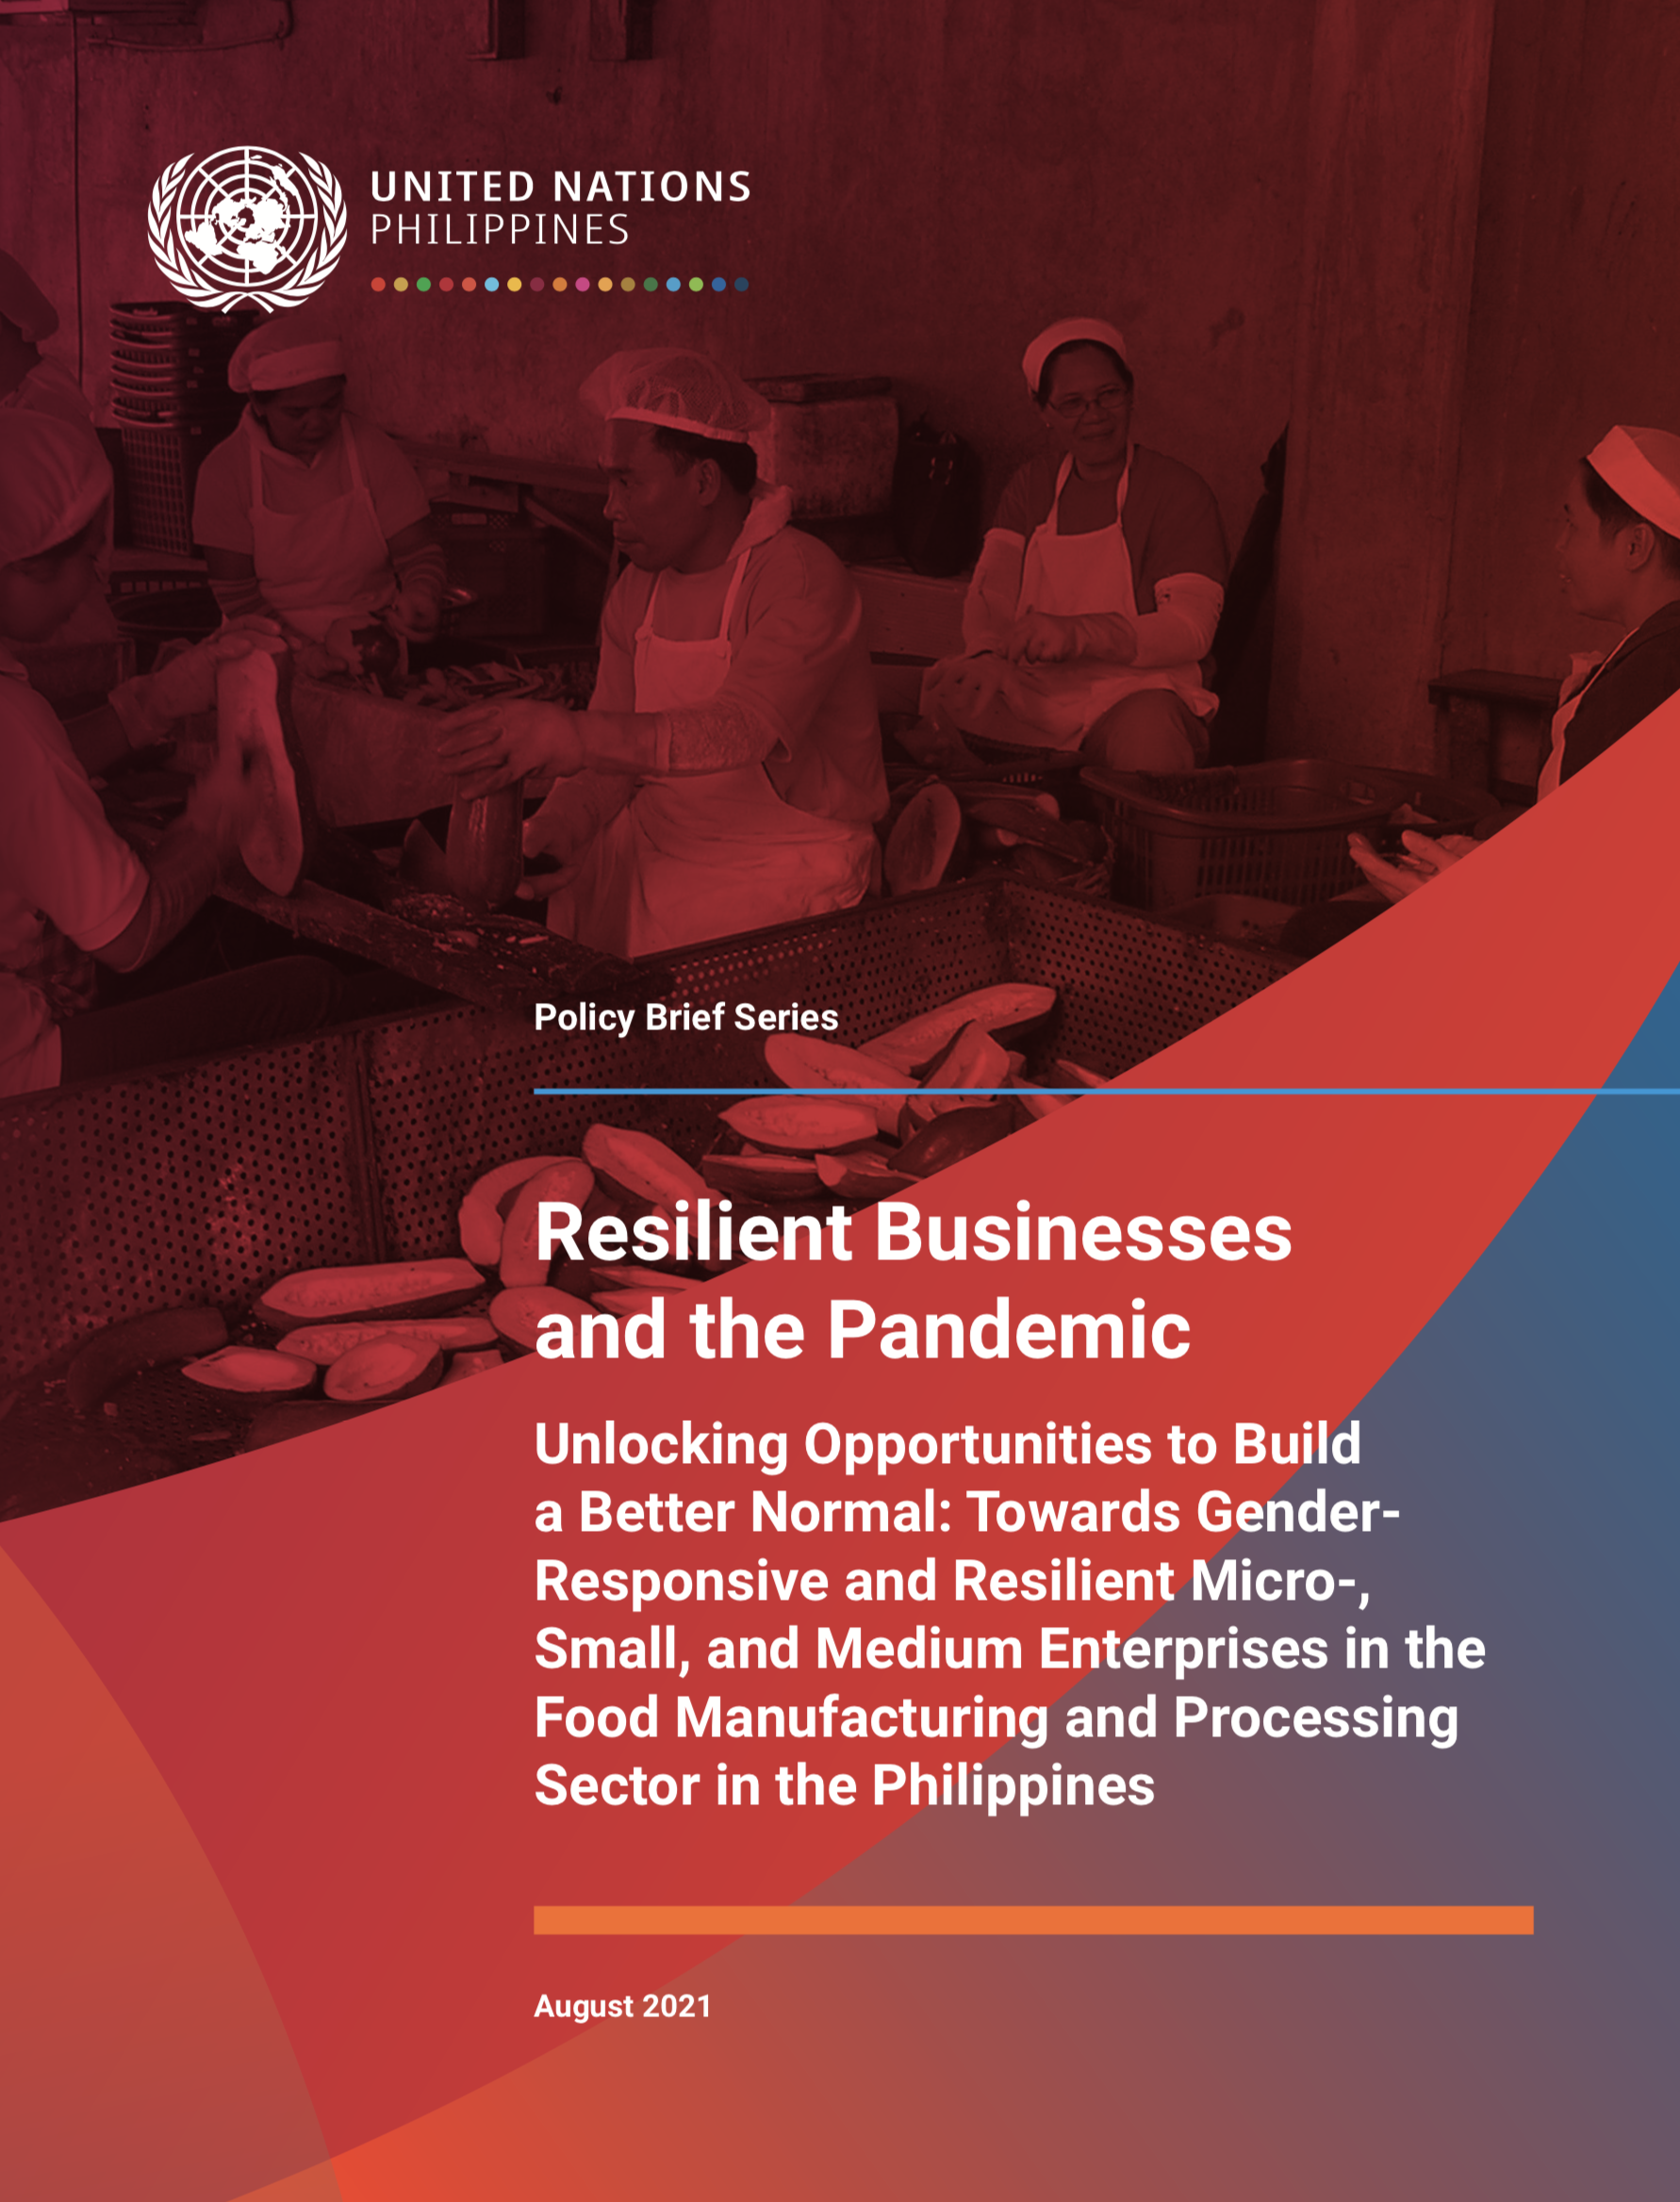 Resilient Businesses and the Pandemic: Unlocking Opportunities to Build a Better Normal: Towards Gender- Responsive and Resilient Micro-, Small, and Medium Enterprises in the Food Manufacturing and Processing Sector in the Philippines